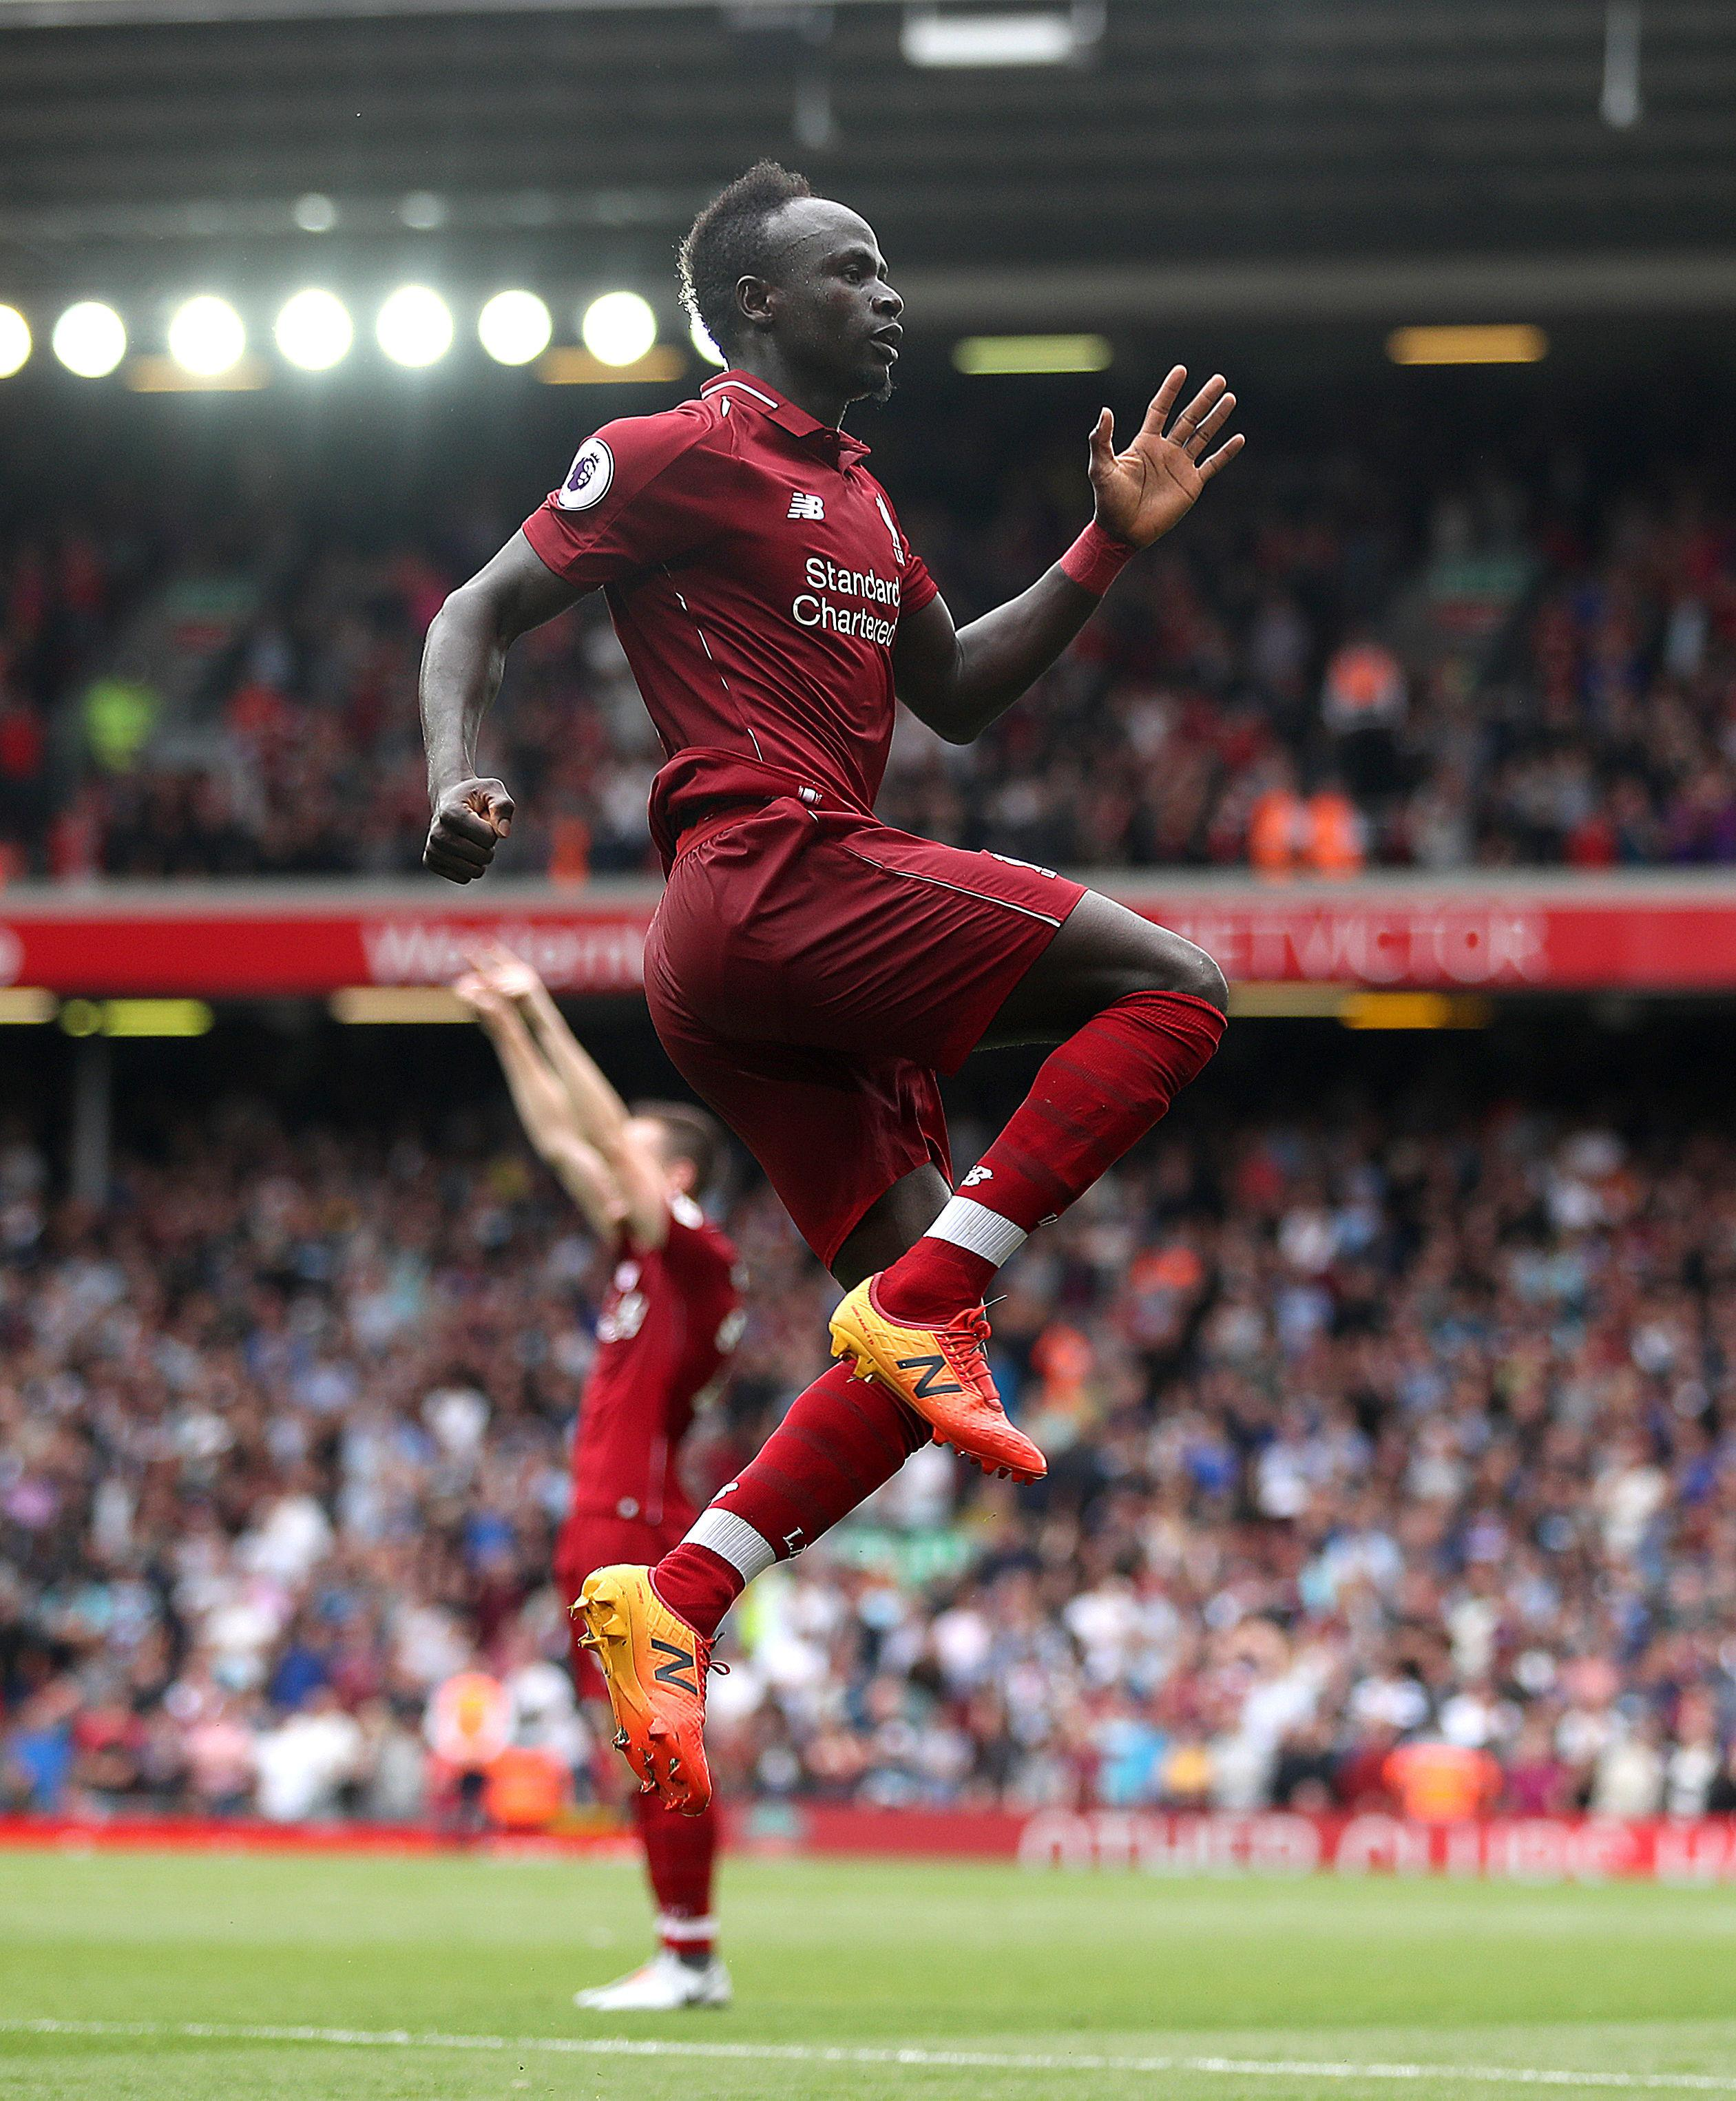 Sadio Mane scored twice in an easy first win of the season for Liverpool